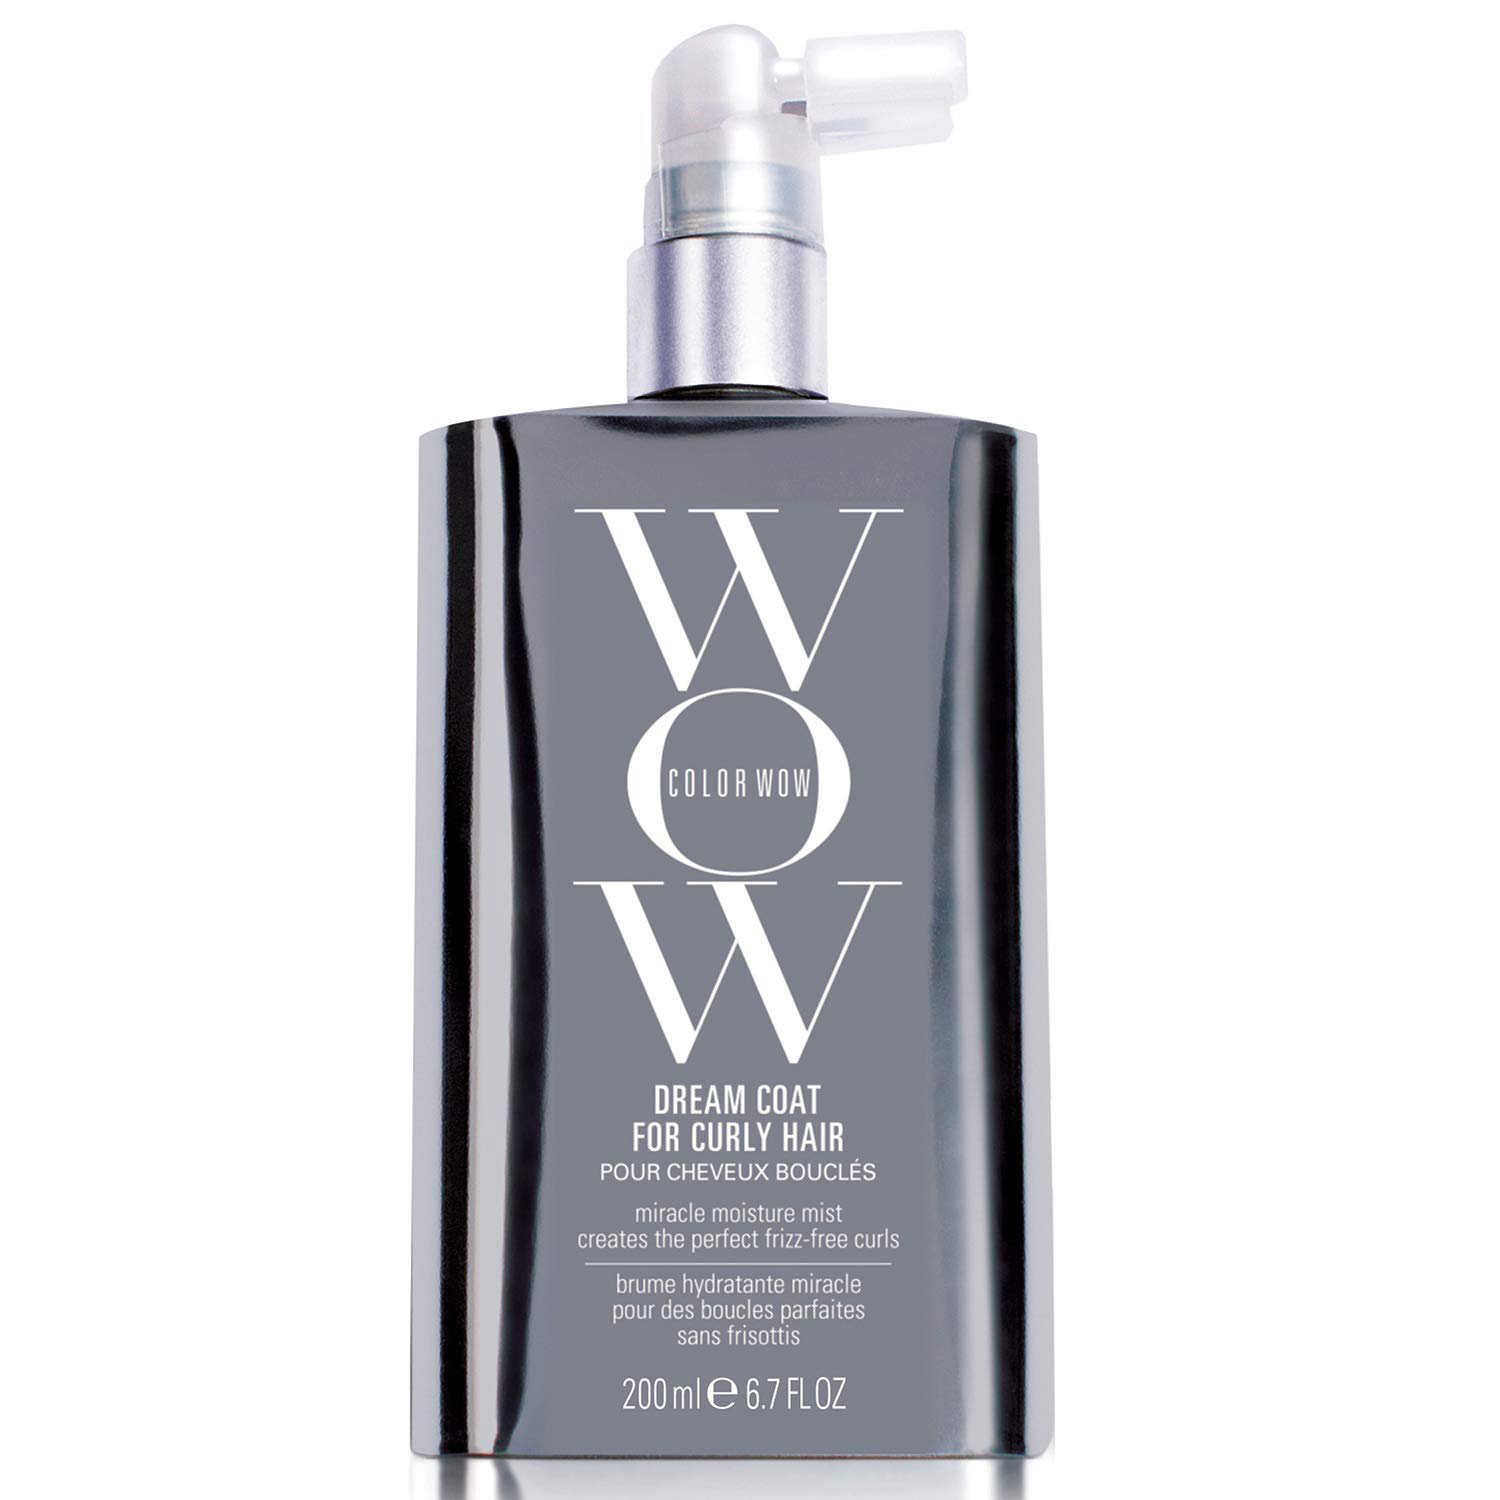 color wow dream coat curly hair miracle moisture mist frizz free curls